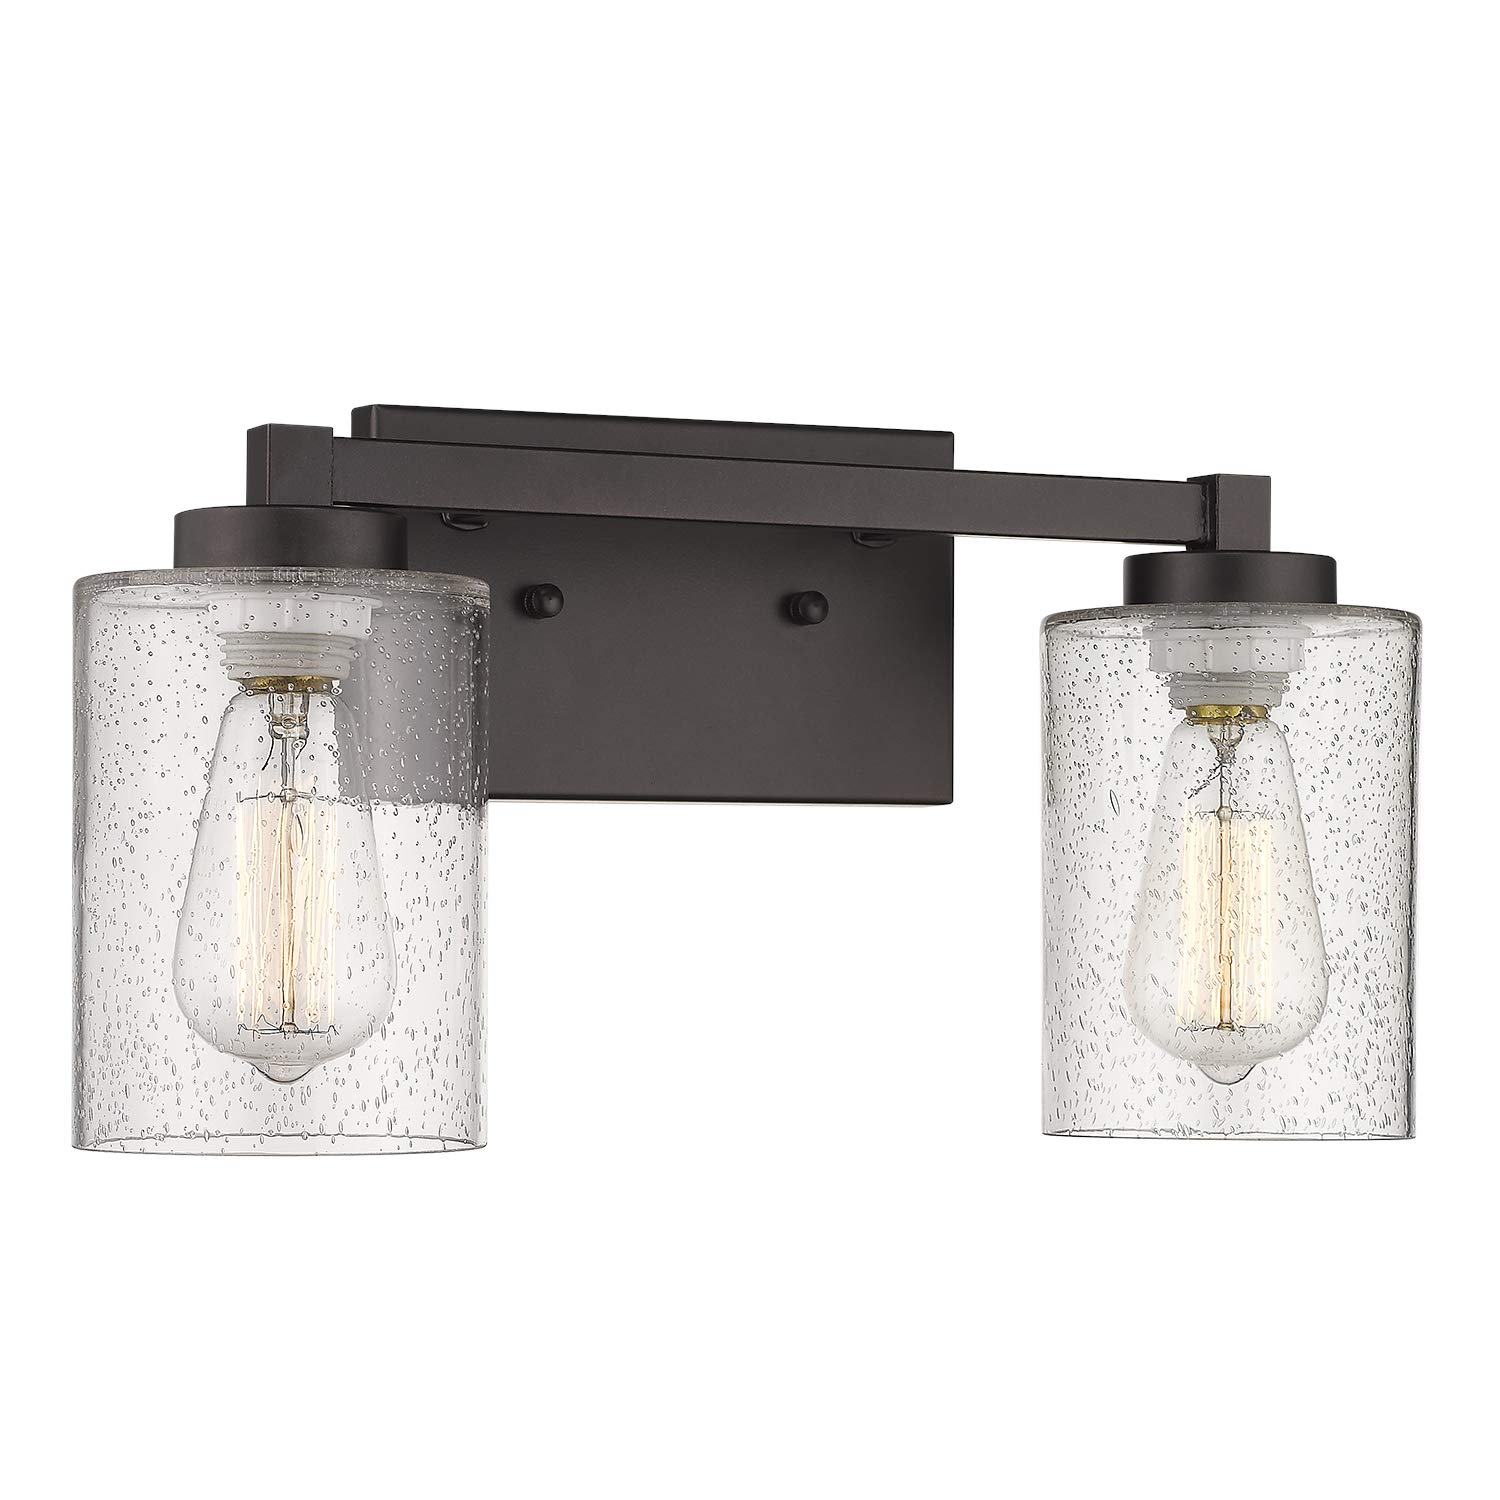 Beionxii 2 Light Bathroom Vanity Lights Vintage Wall Sconce Oil Rubbed Bronze With Clear Seeded Glass 16 1 W X 8 7 H Mb9002 Series Buy Online In Cayman Islands At Cayman Desertcart Com Productid